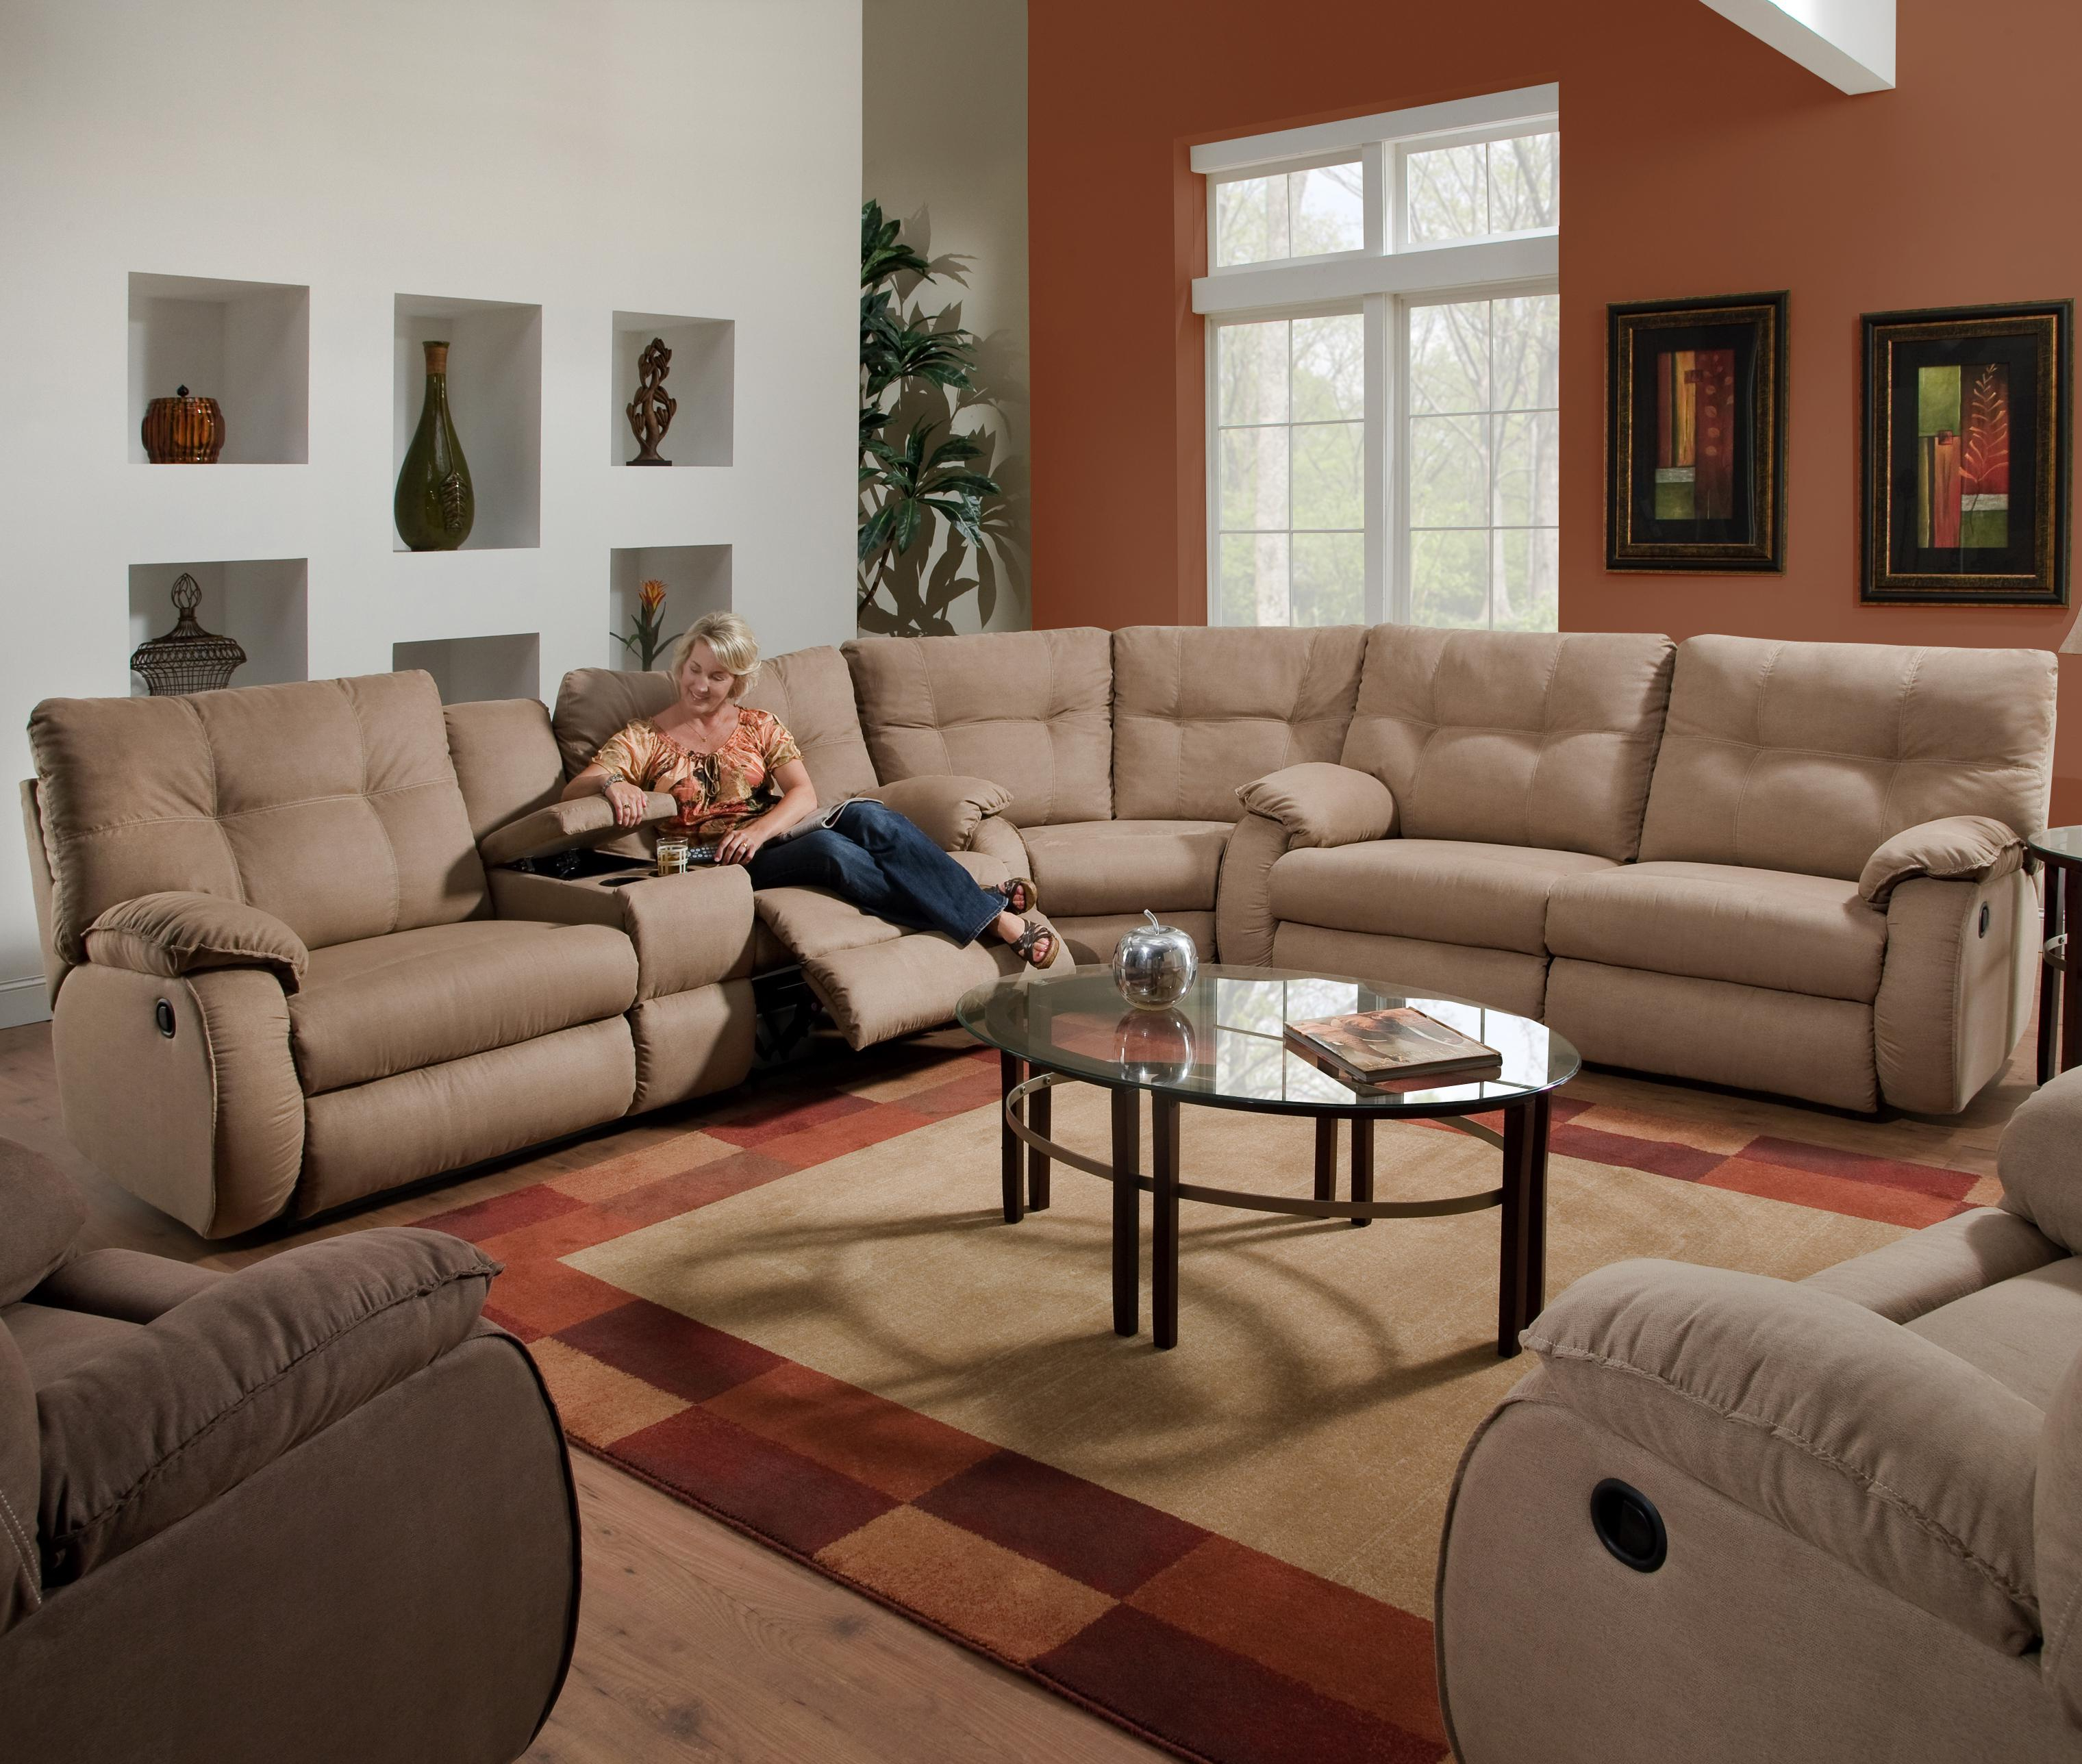 Denali Light Grey 6 Piece Reclining Sectionals With 2 Power Headrests Inside 2019 Sectional Sofa With Hide A Bed (View 7 of 20)